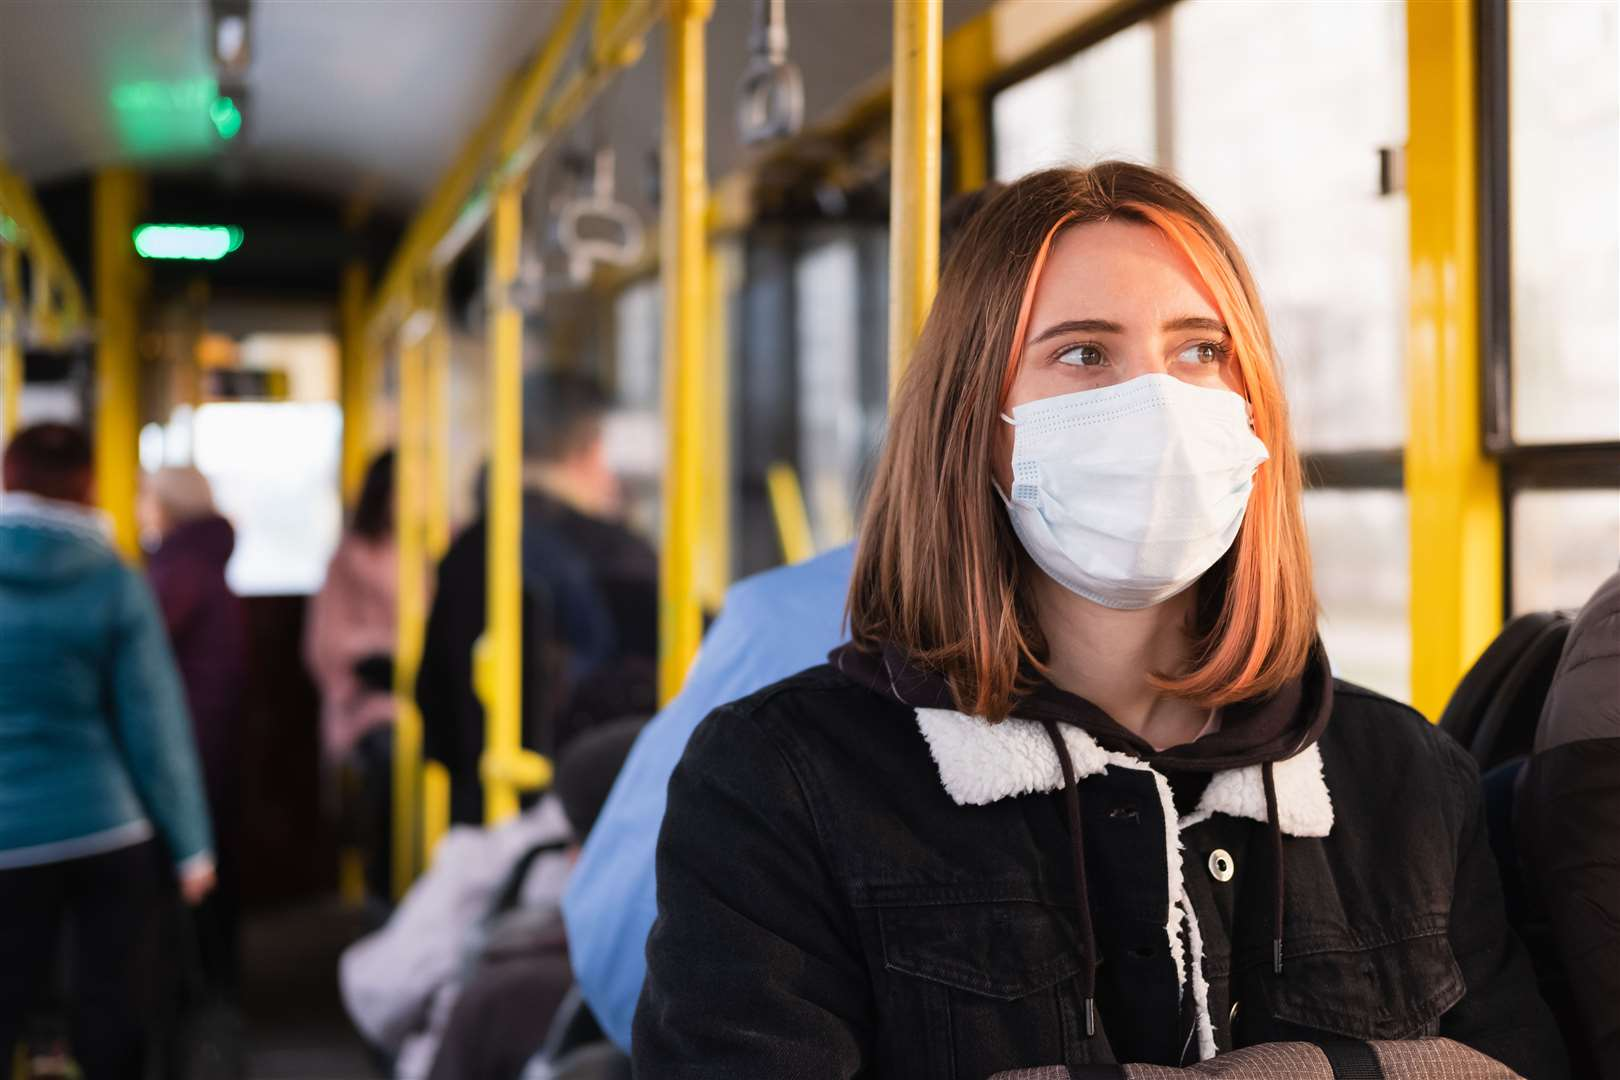 Requirements to wear face masks on public transport may be lifted by September. Stock picture